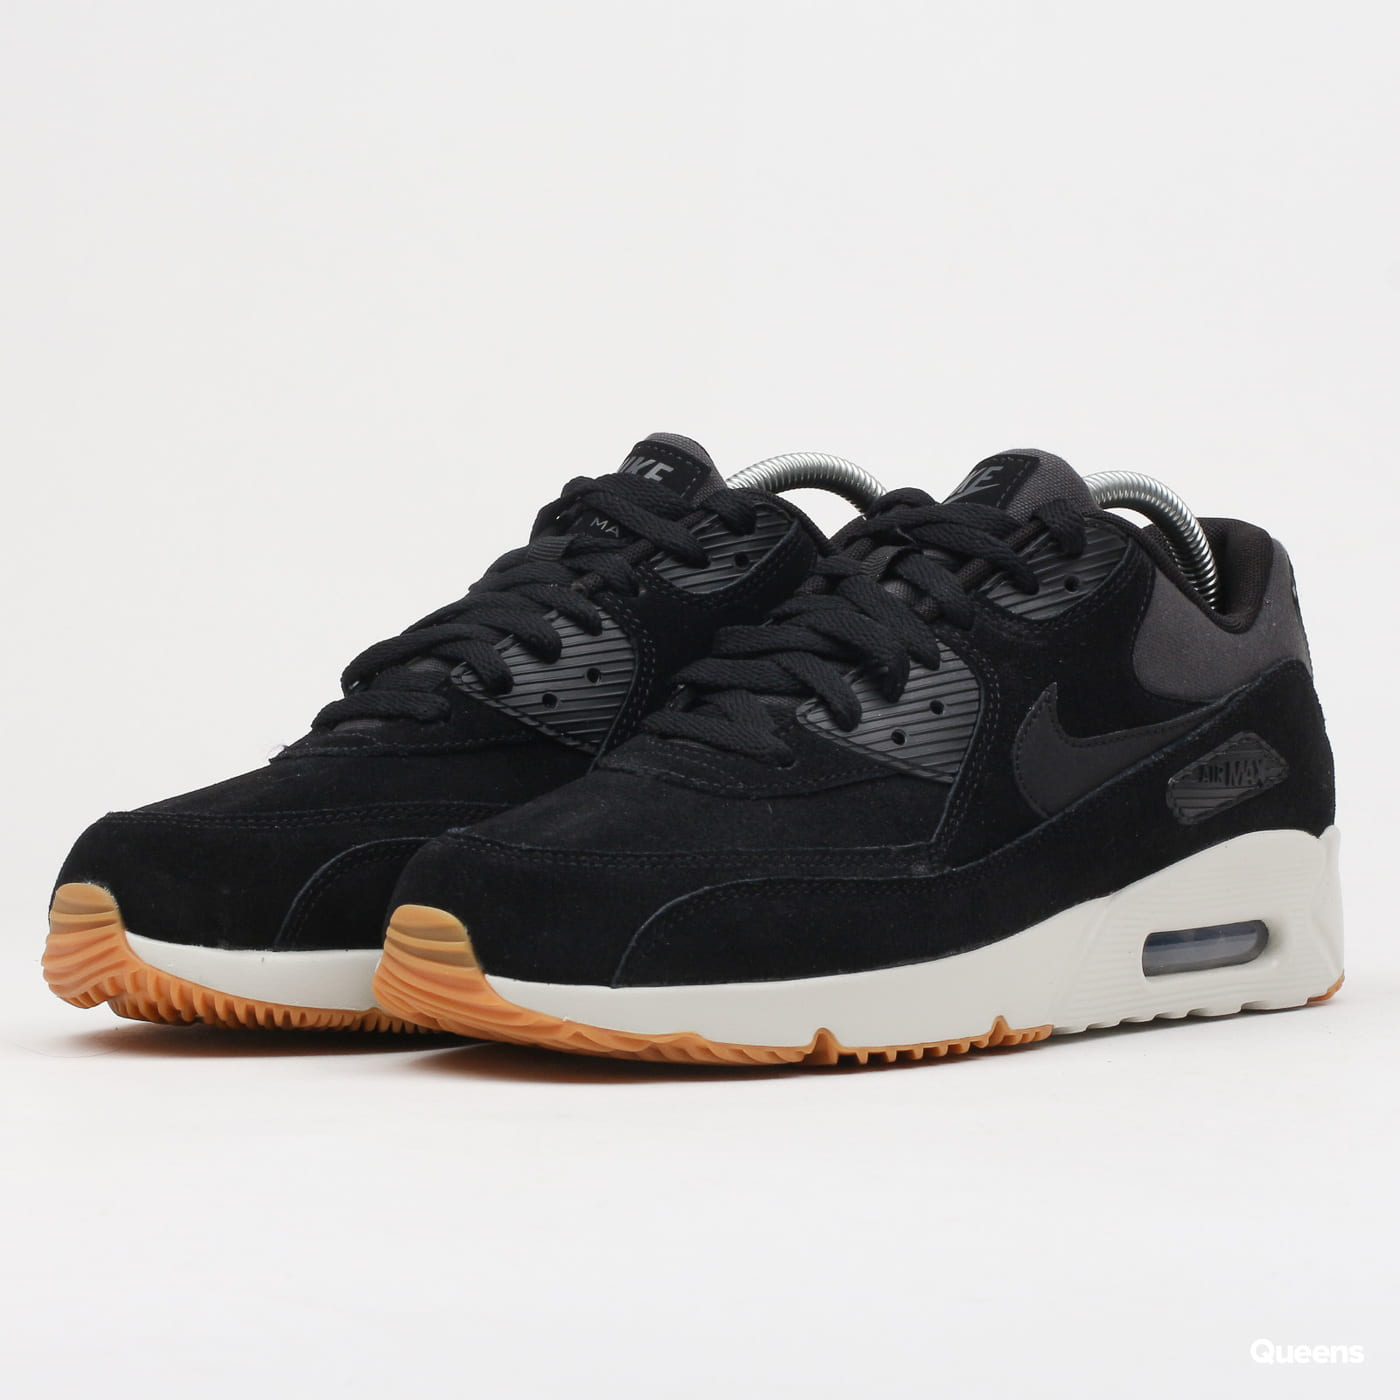 new style d799b e8a1e Sneakers Nike Air Max 90 Ultra 2.0 Leather (924447-003)– Queens 💚